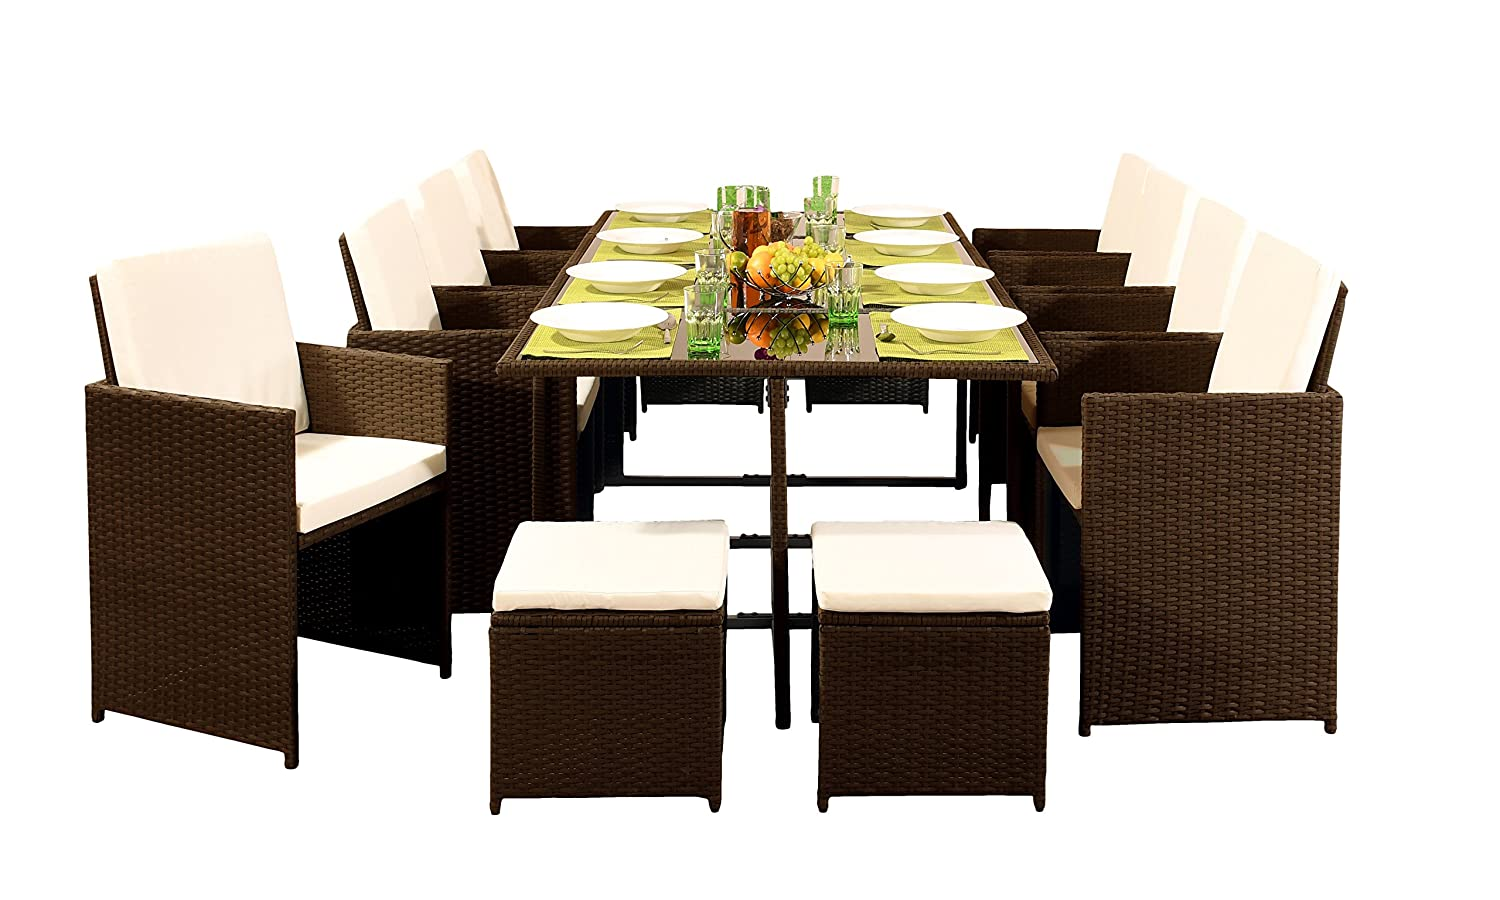 Surprising Comfy Living 12 Seater Rattan Outdoor Garden Furniture Set 8 Chairs 4 Stools Dining Table With Cover Dark Brown Ibusinesslaw Wood Chair Design Ideas Ibusinesslaworg